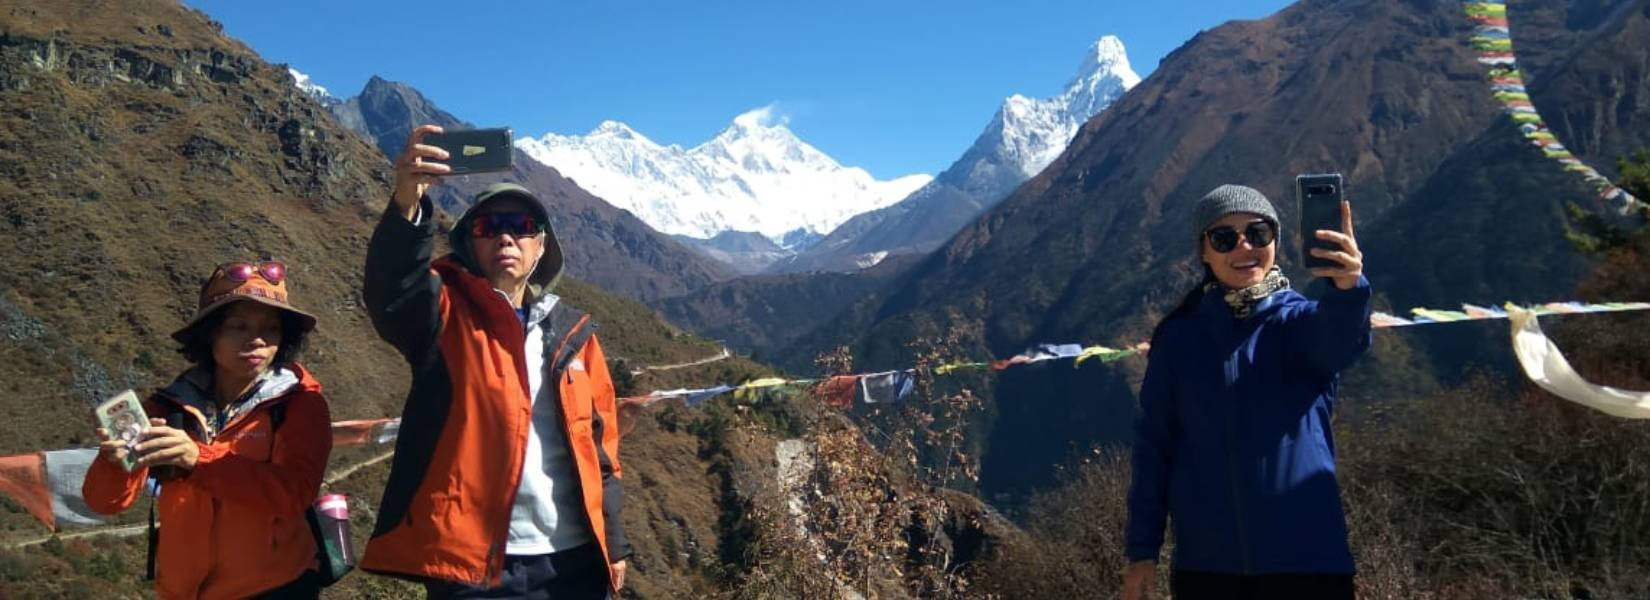 trekking in nepal for seniors